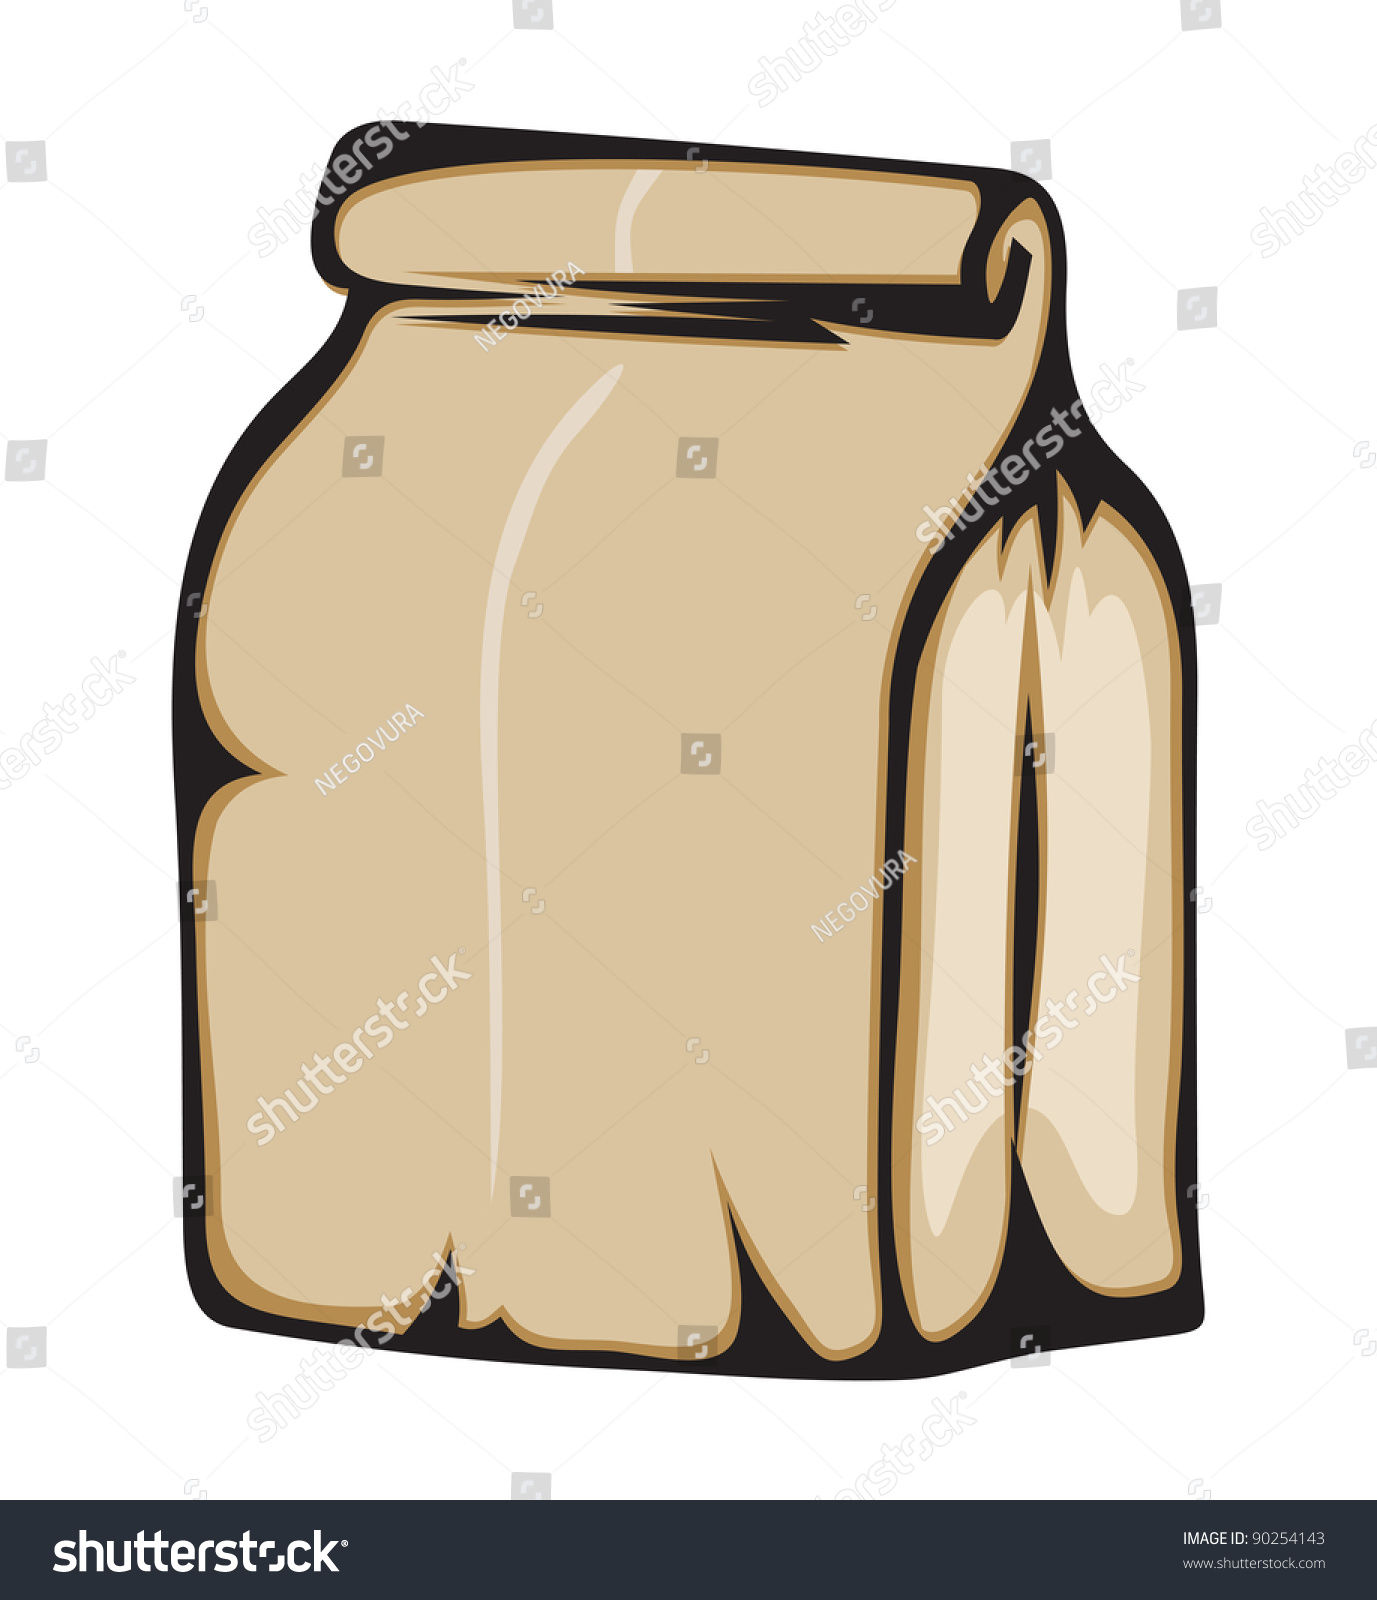 Paper bag vector - Paper Bag Vector Format Is Also Available In My Gallery